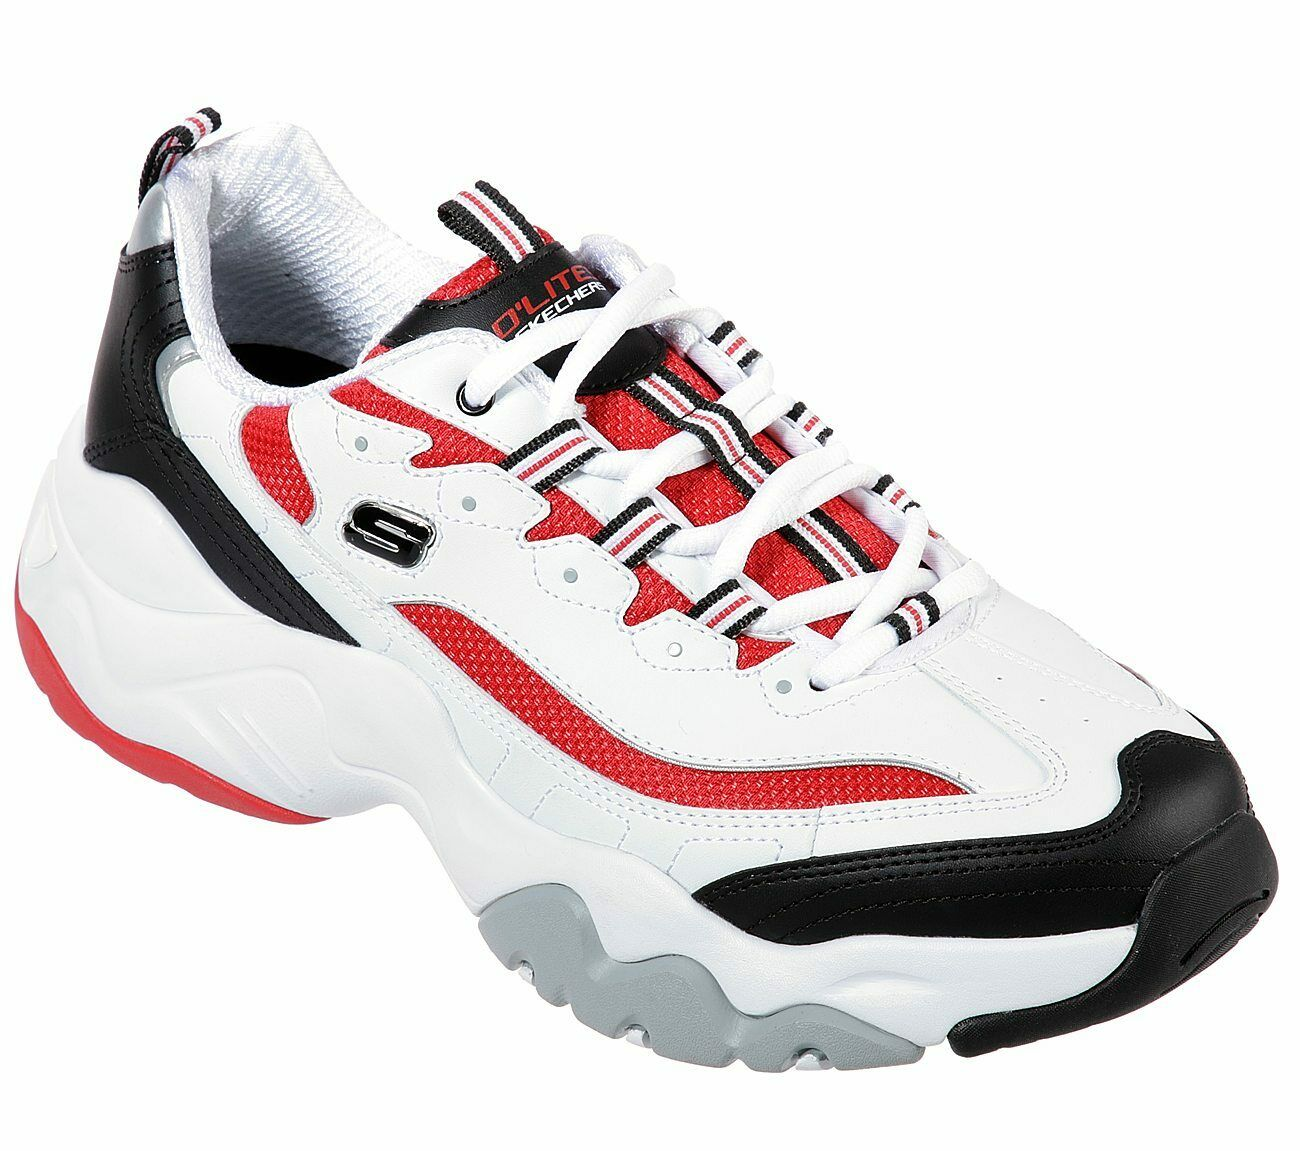 Skechers D'lites White Red shoes Men's Memory Foam Sporty Comfort Casual 52684